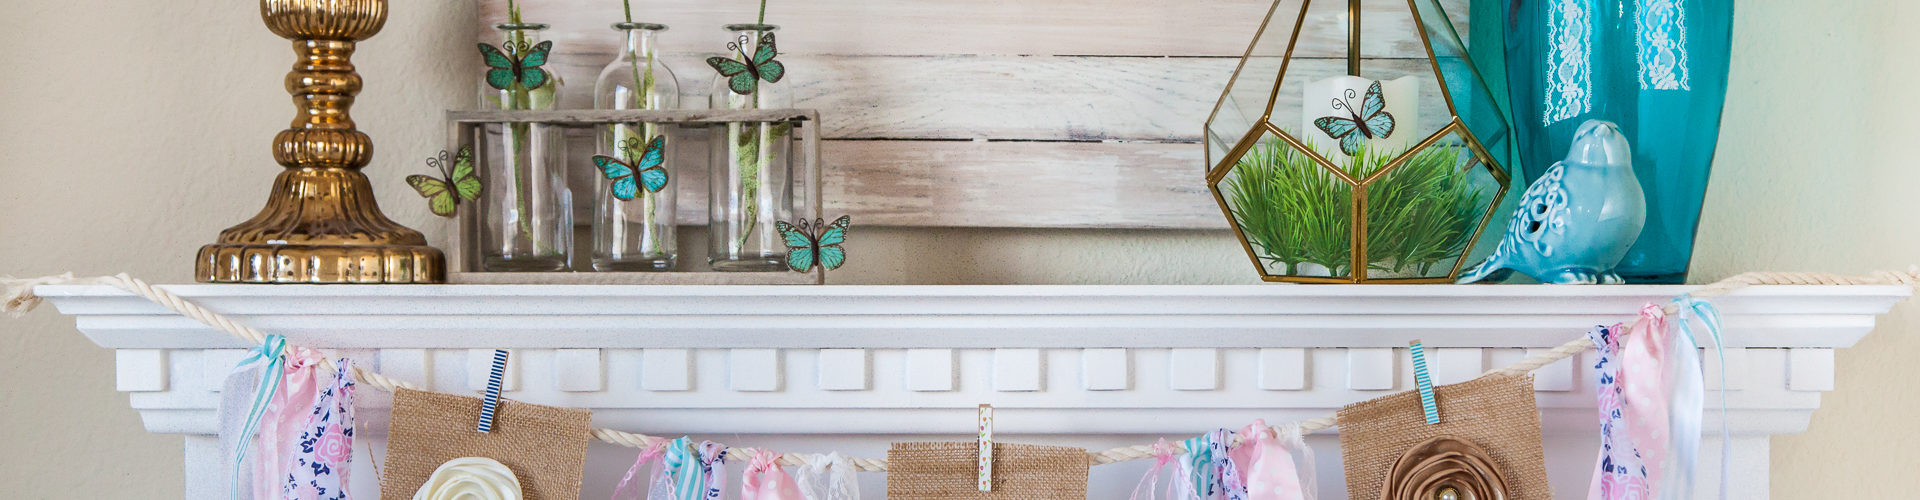 mantel spring decor banner grass burlap